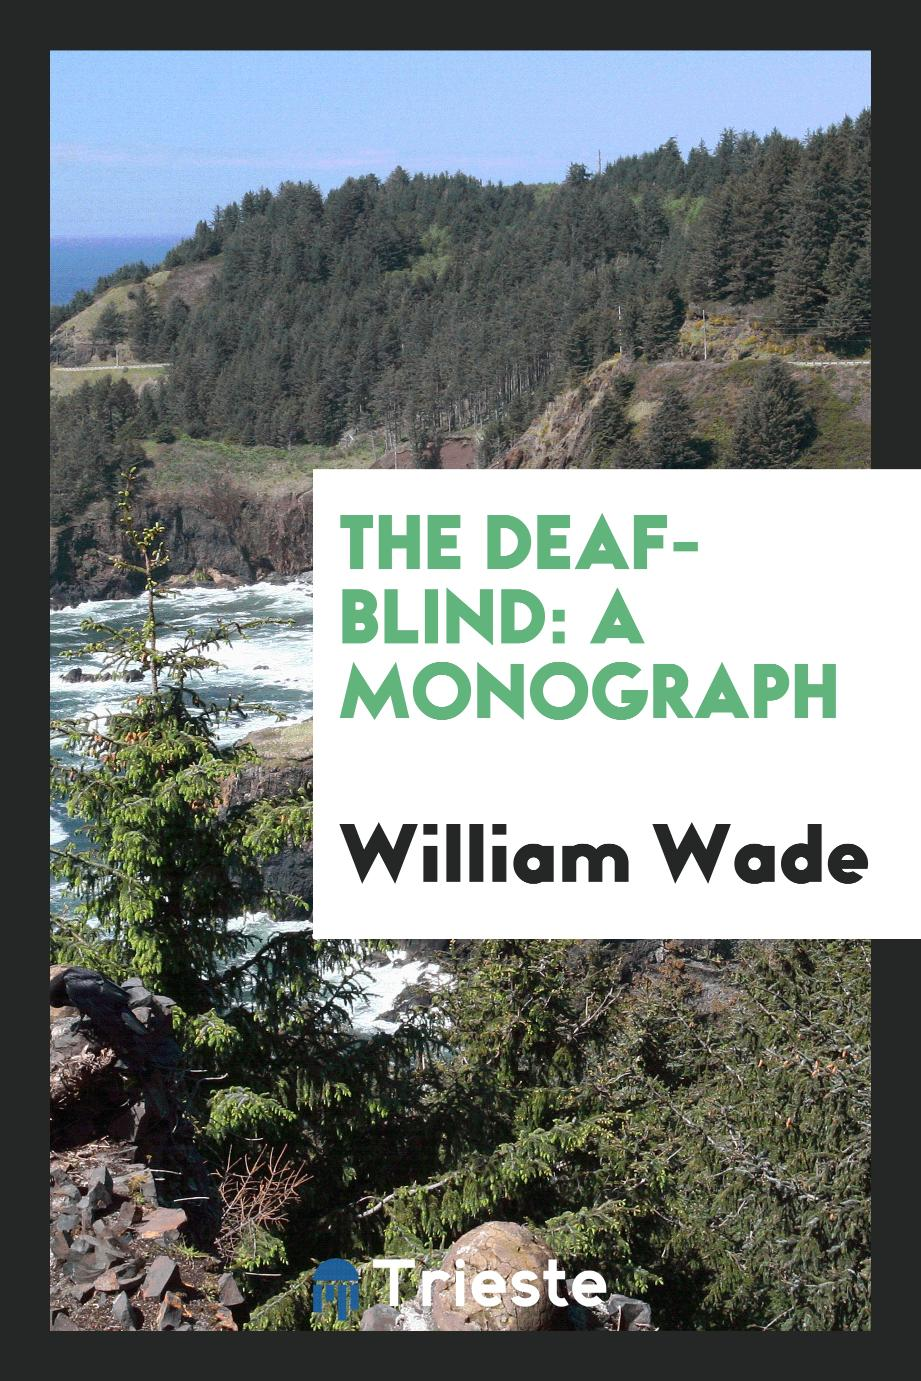 The Deaf-Blind: A Monograph